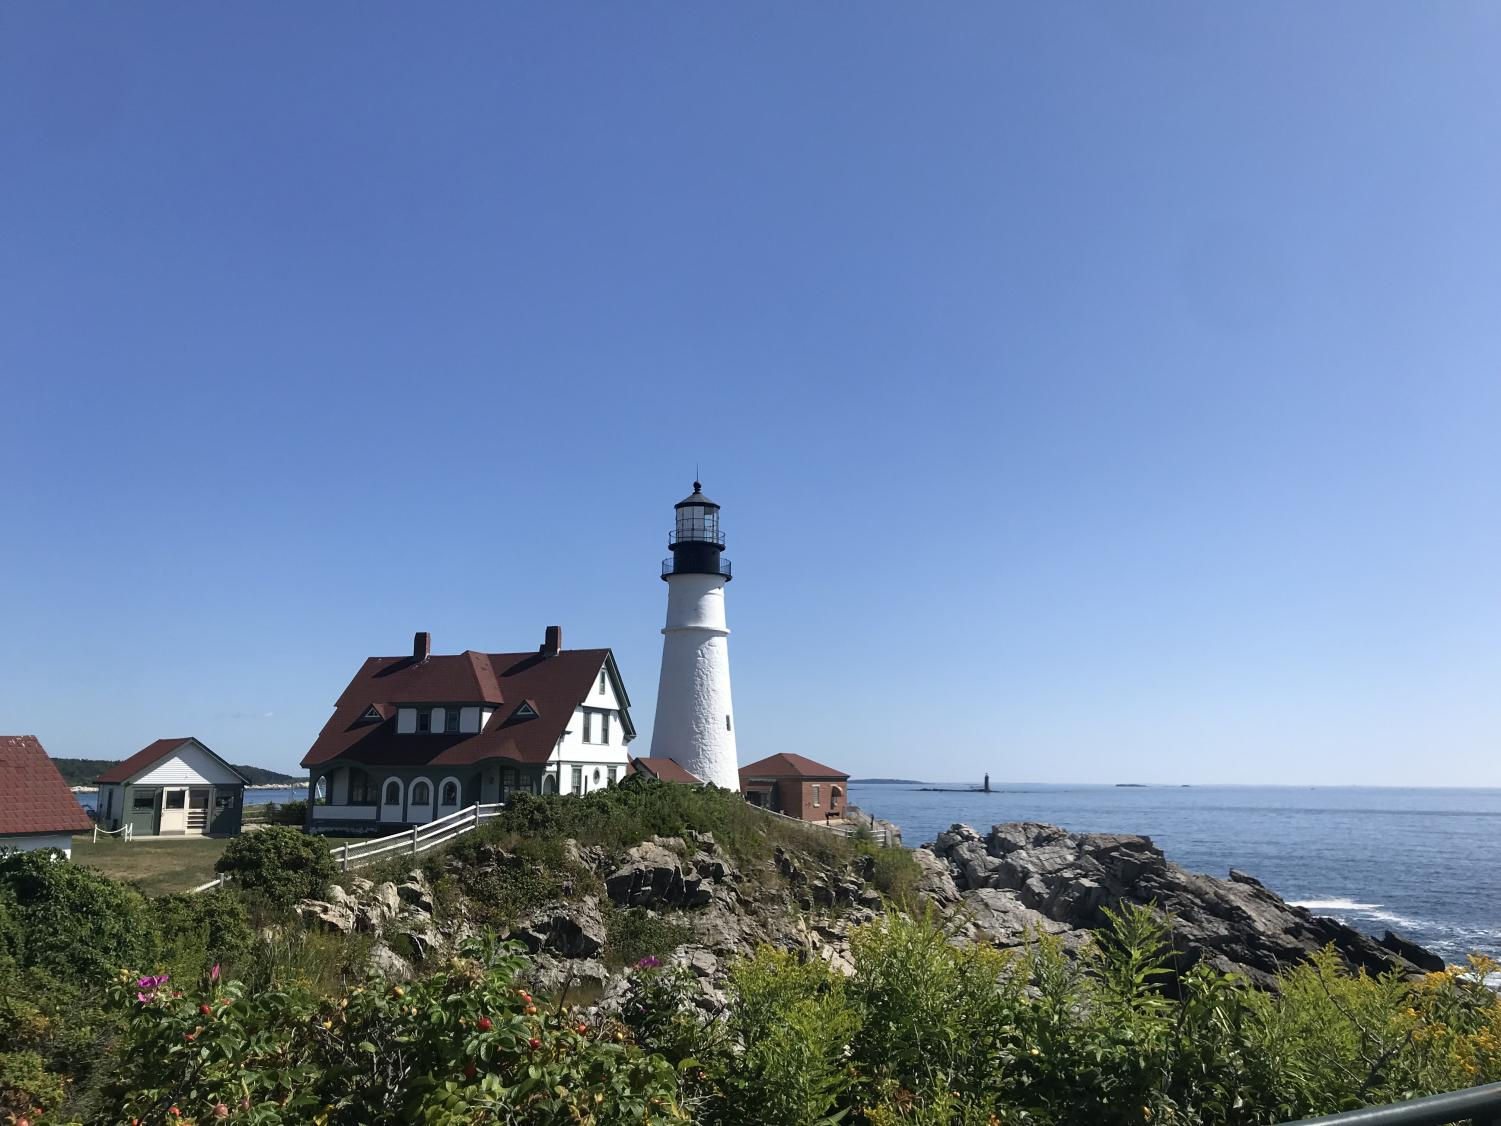 An+image+of+the+Portland+Head+Lighthouse+in+Cape+Elizabeth%2C+Maine.+Junior+Jack+McGuire+visited+the+Portland+Head+Lighthouse%2C+one+of+the+oldest%2C+operable+lighthouses+in+the+U.S%2C+on+his+trip+throughout+the+Northeast+United+States.+